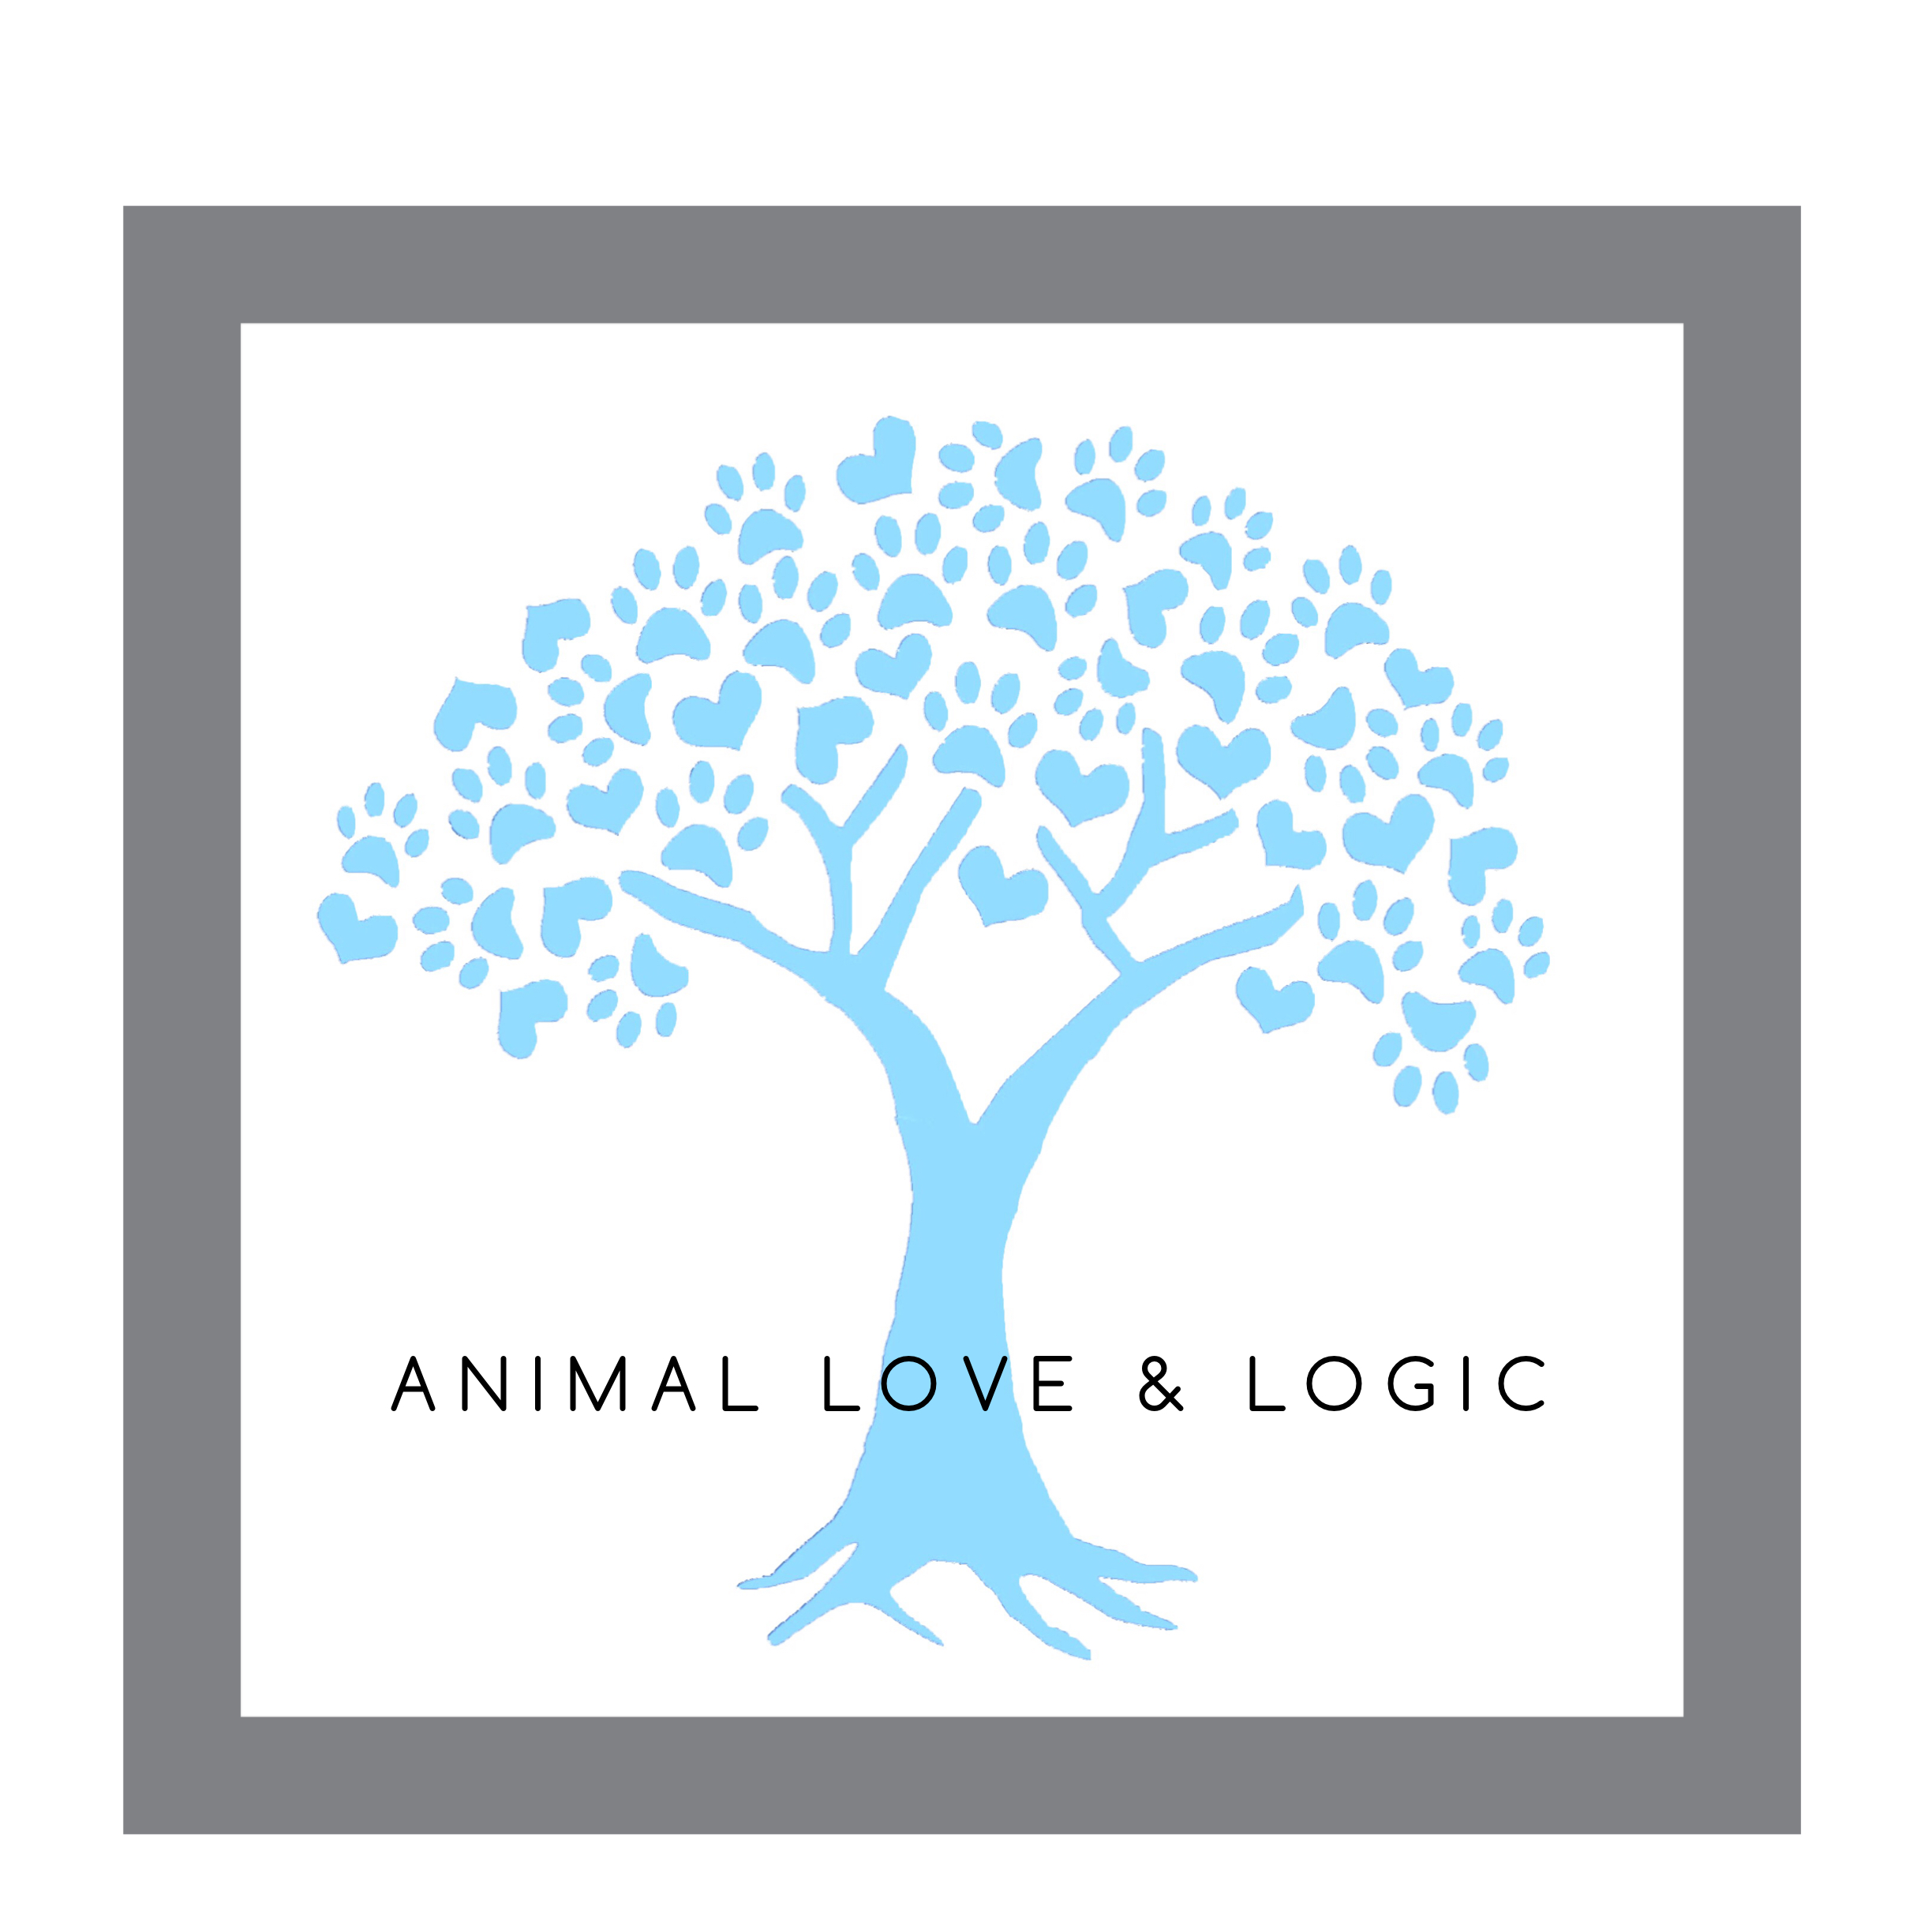 Animal Love & Logic